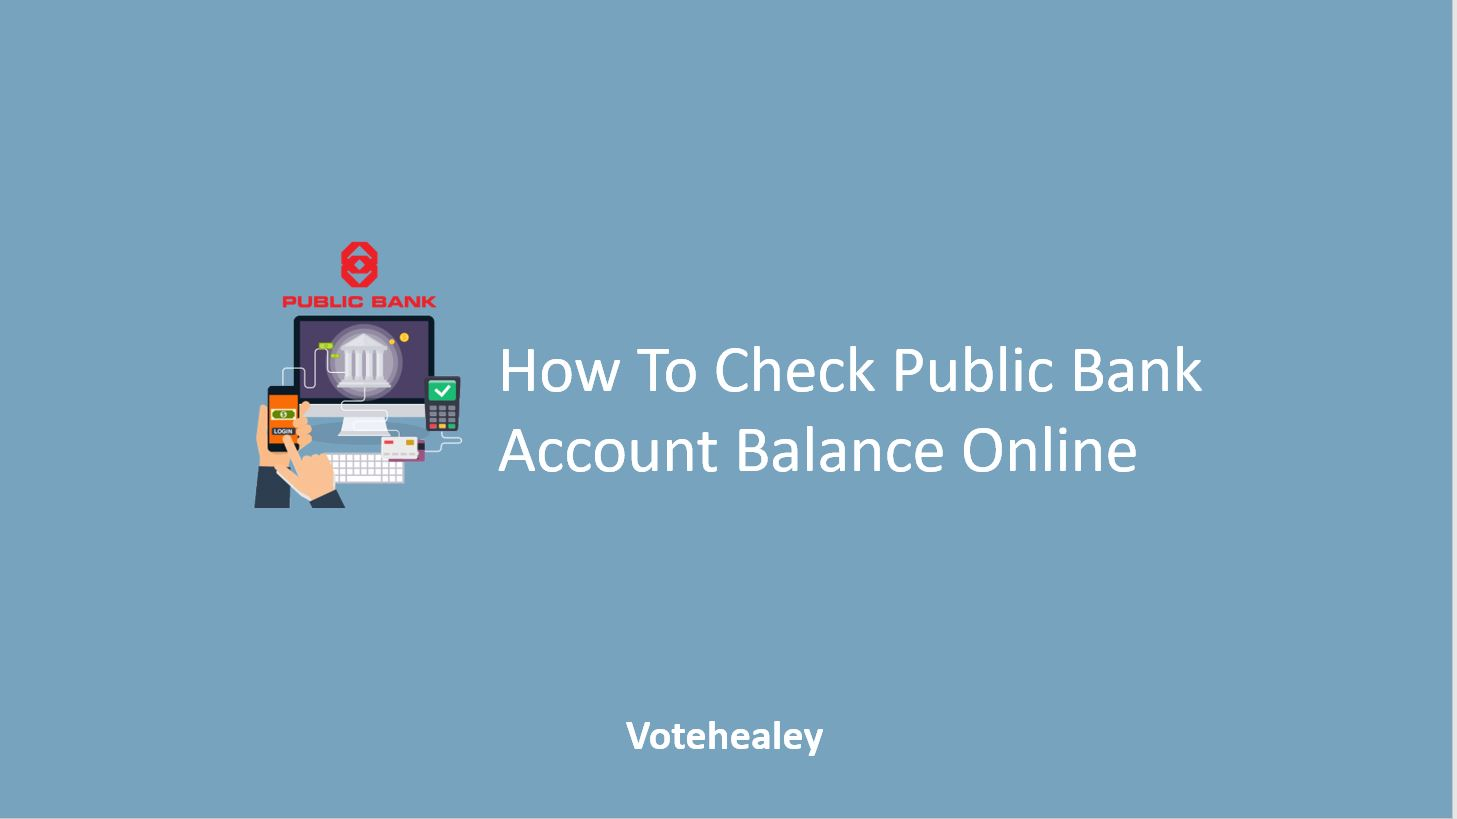 How To Check Public Bank Account Balance Online